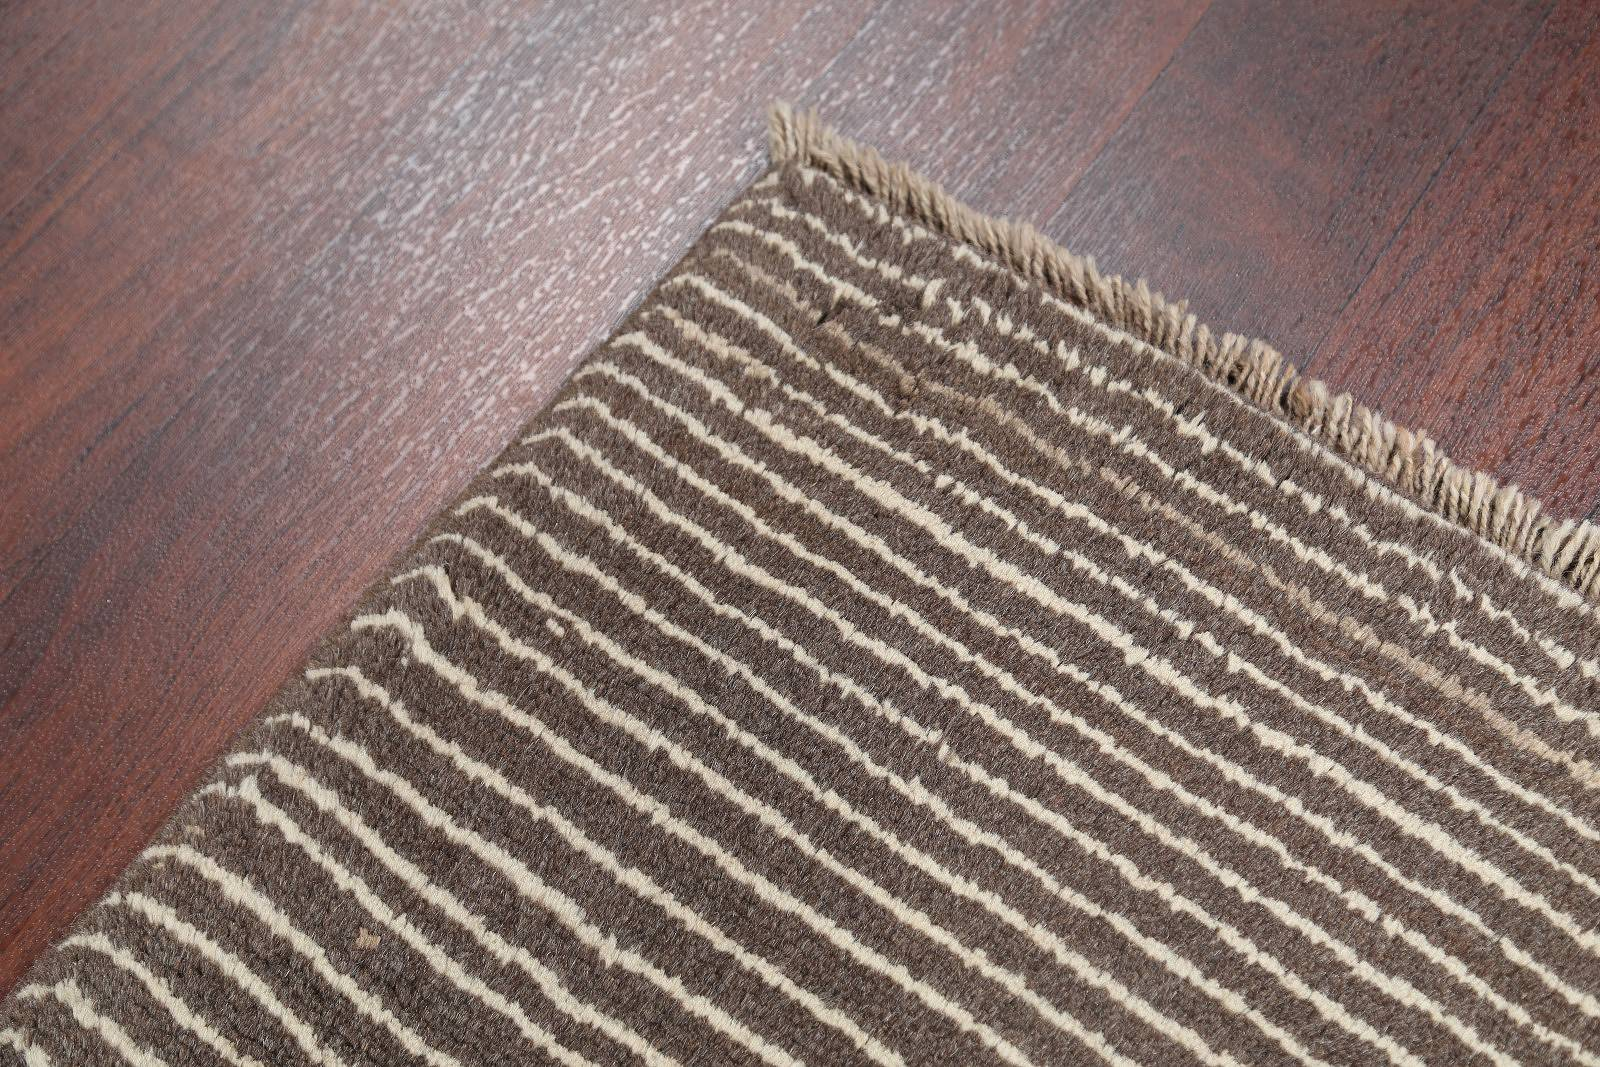 Striped Earth-Tone Color 3x4 Gabbeh Shiraz Persian Area Rug